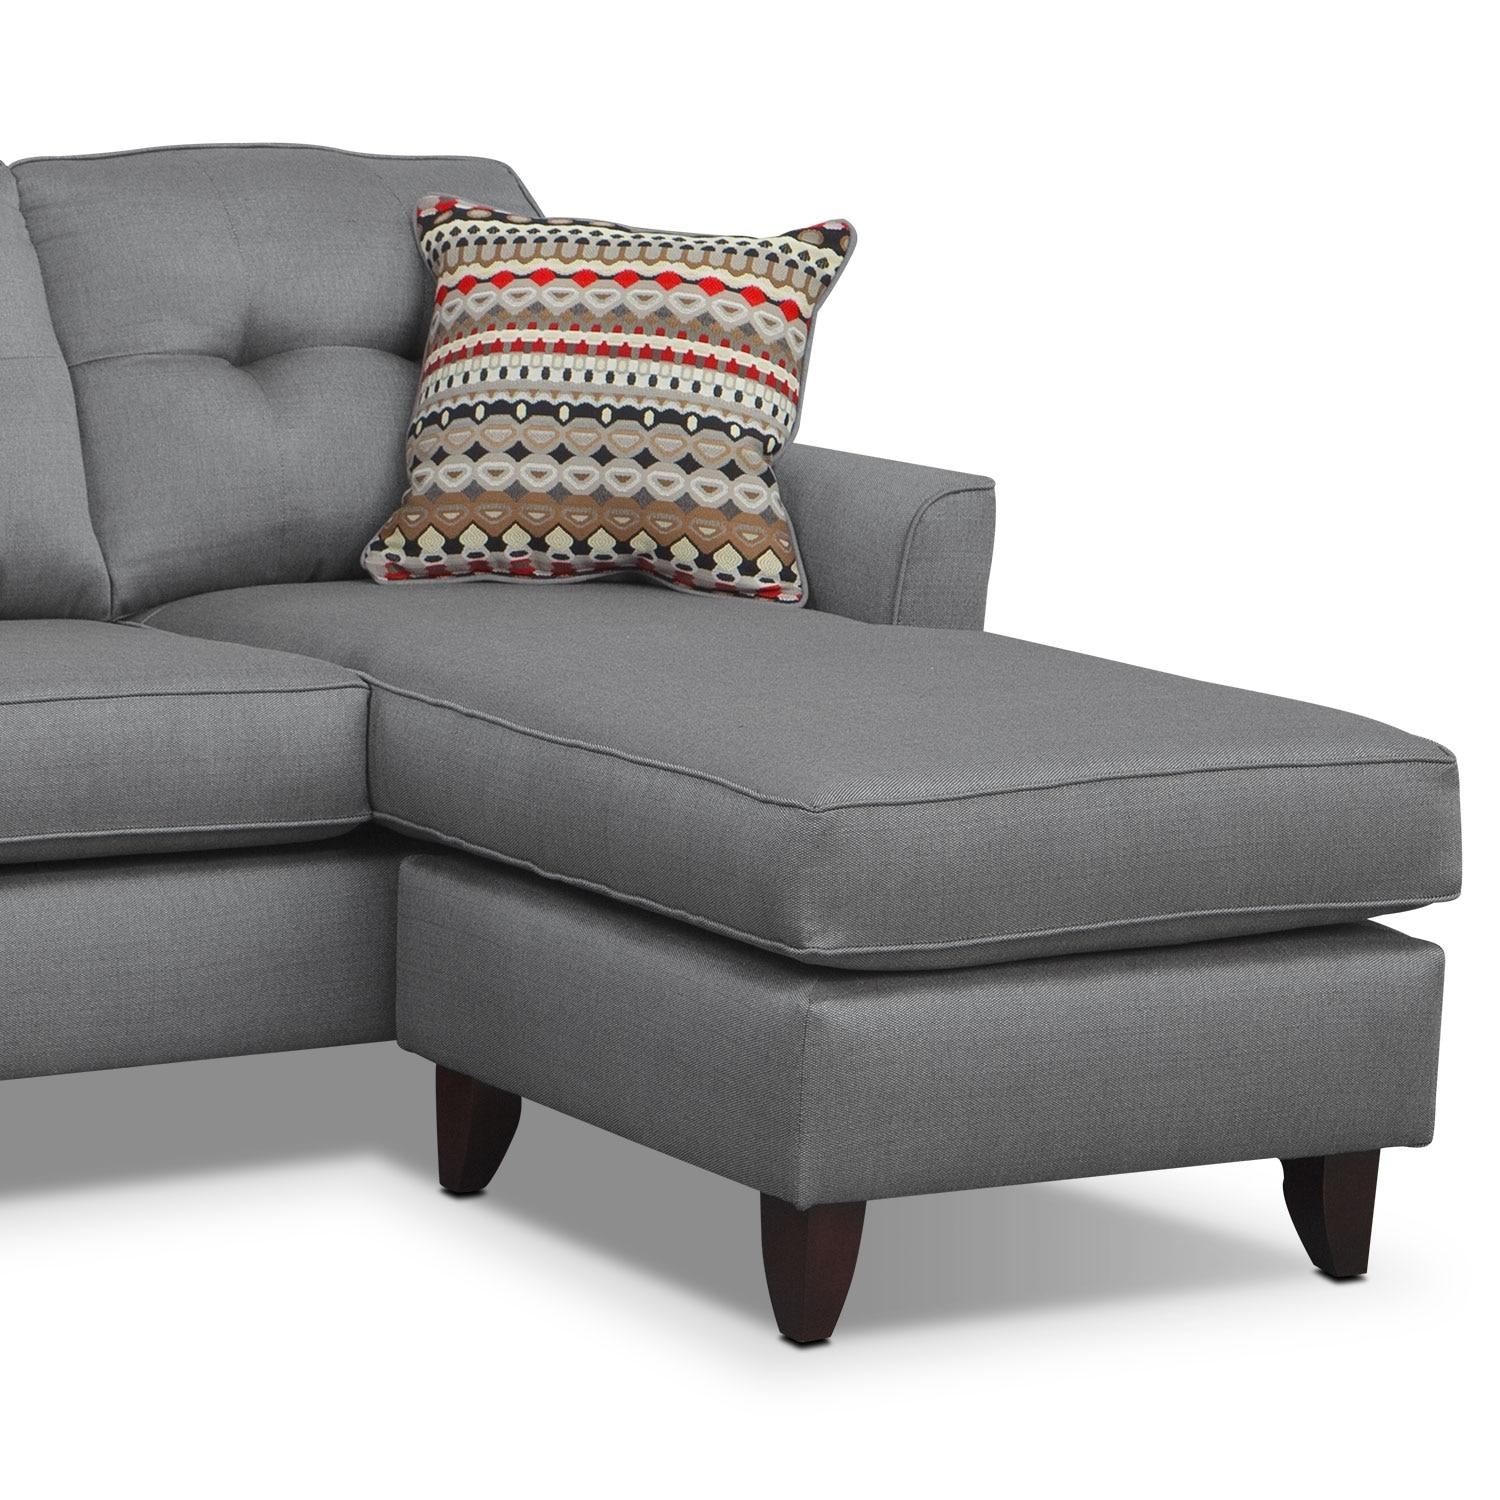 Marco Chaise Sofa – Gray | American Signature Furniture For Chaise Sofas (View 4 of 20)